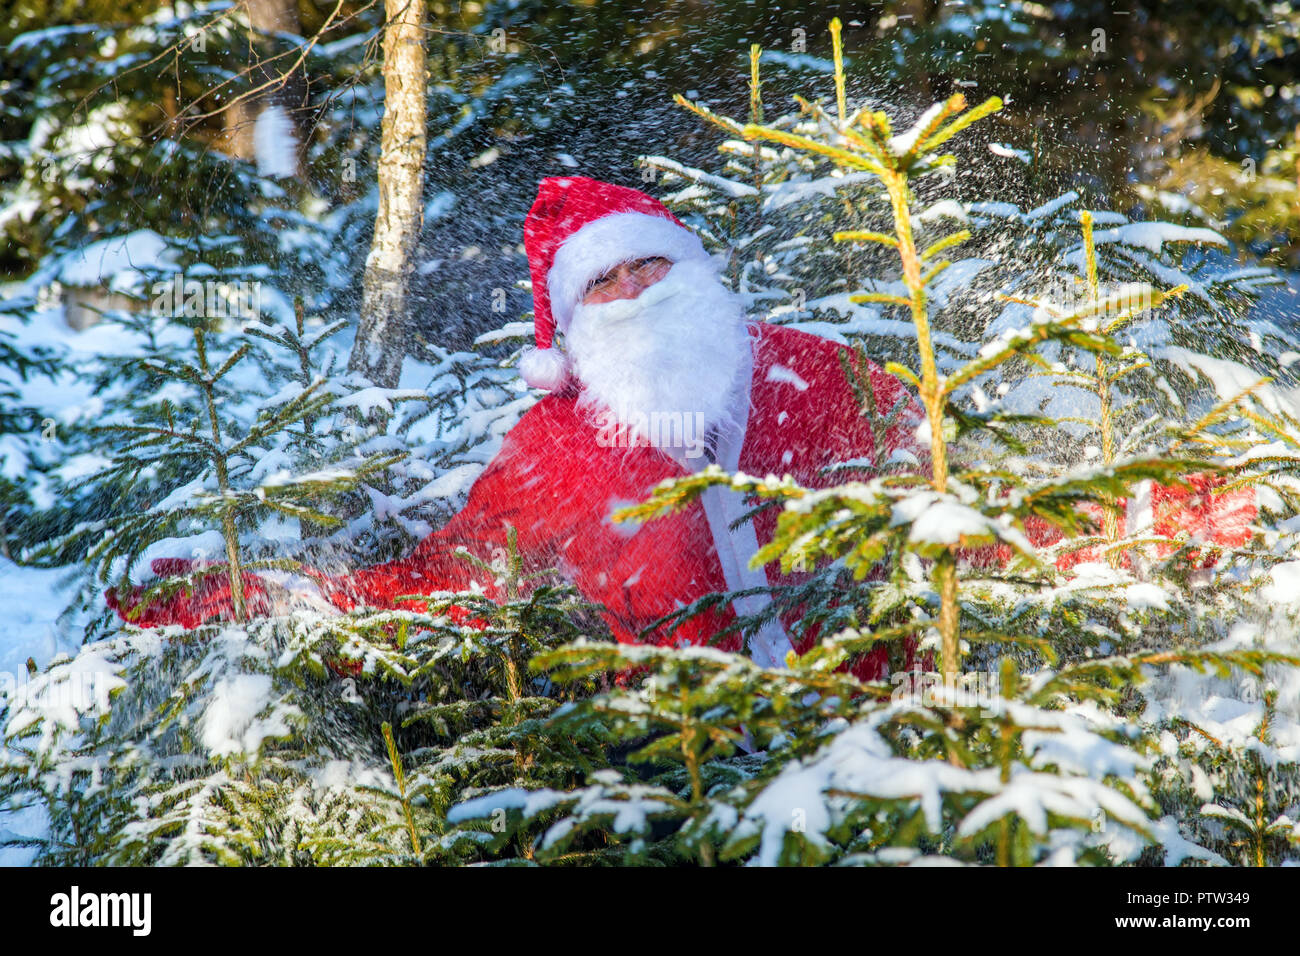 Santa Claus jump from snowy trees. Funny Santa peeks out of the winter forest with spray of snow. - Stock Image